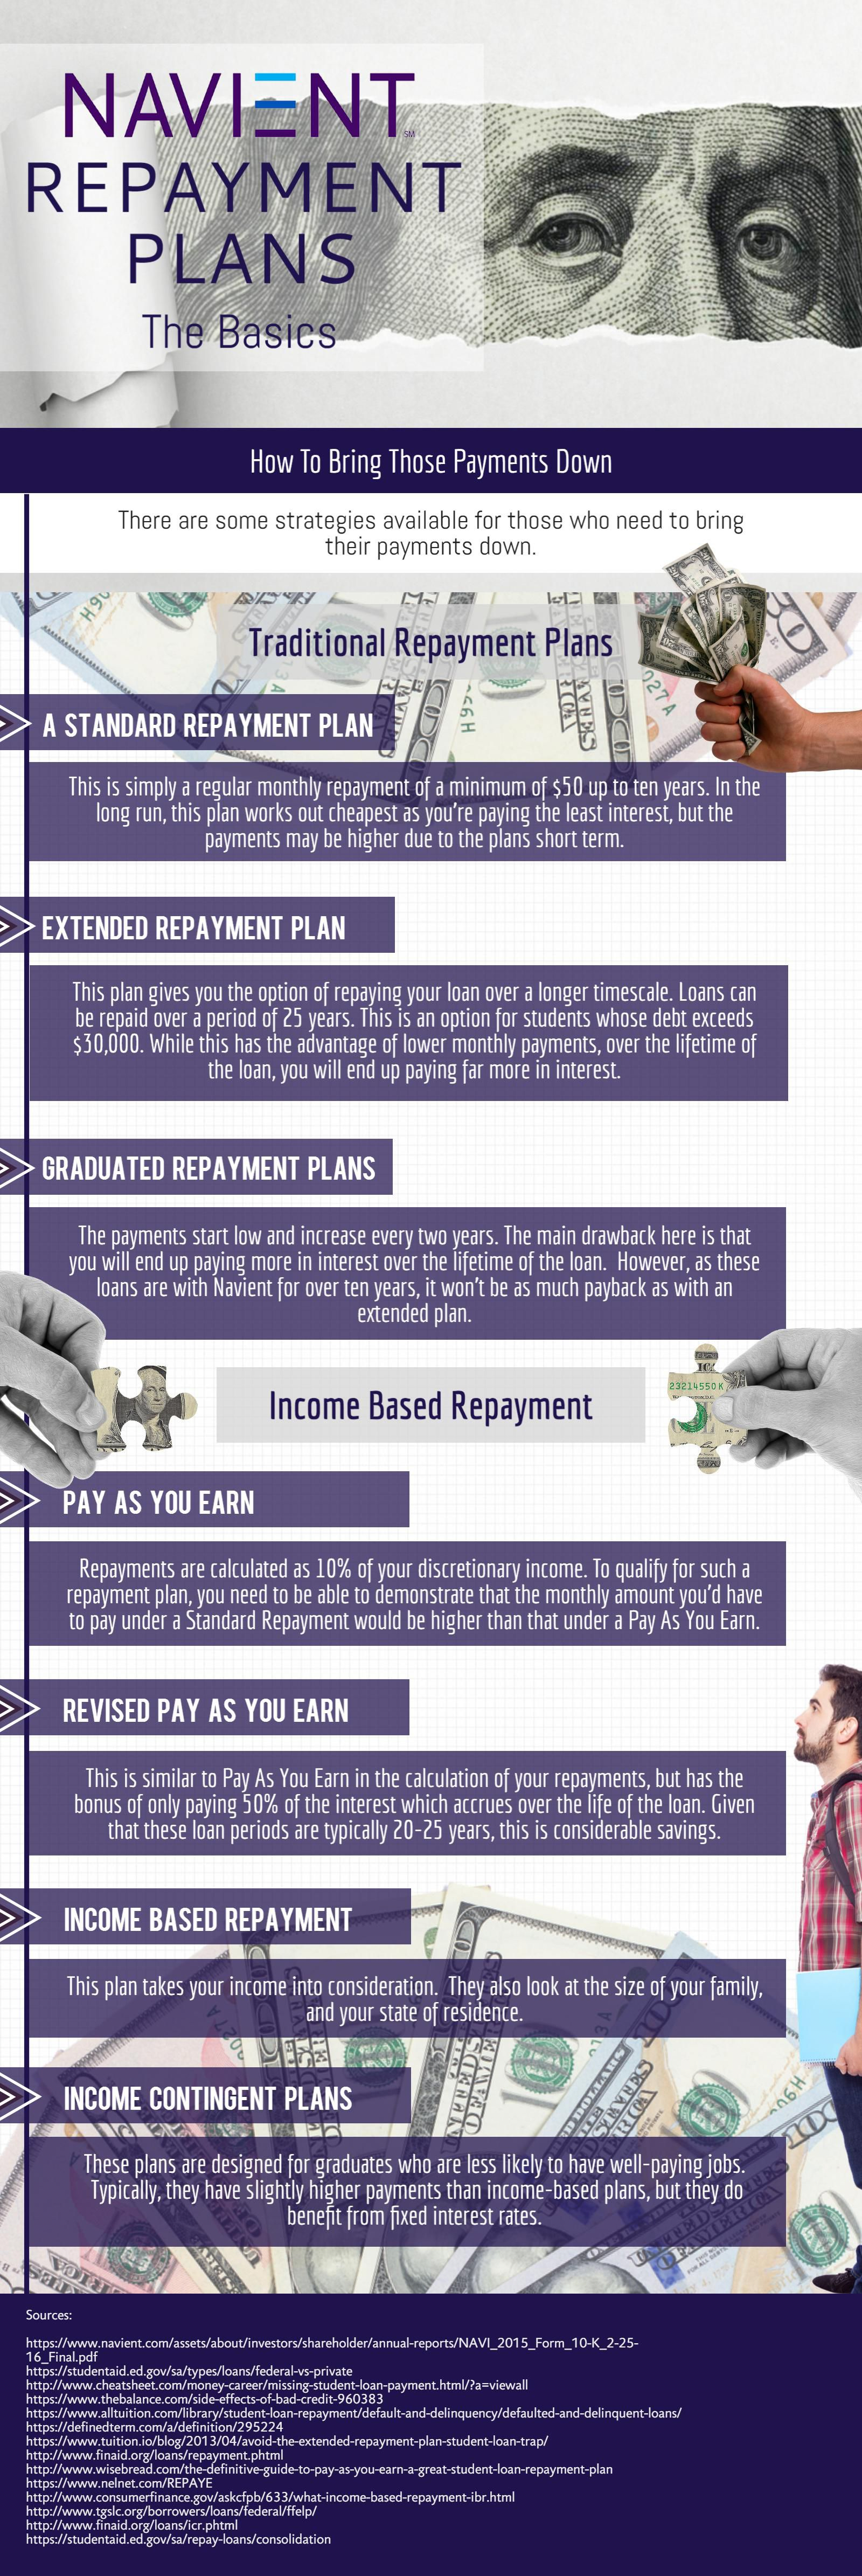 REPAYMENT PLANS INFOGRAPHIC | How To Lower Your Navient Student Loan Payment